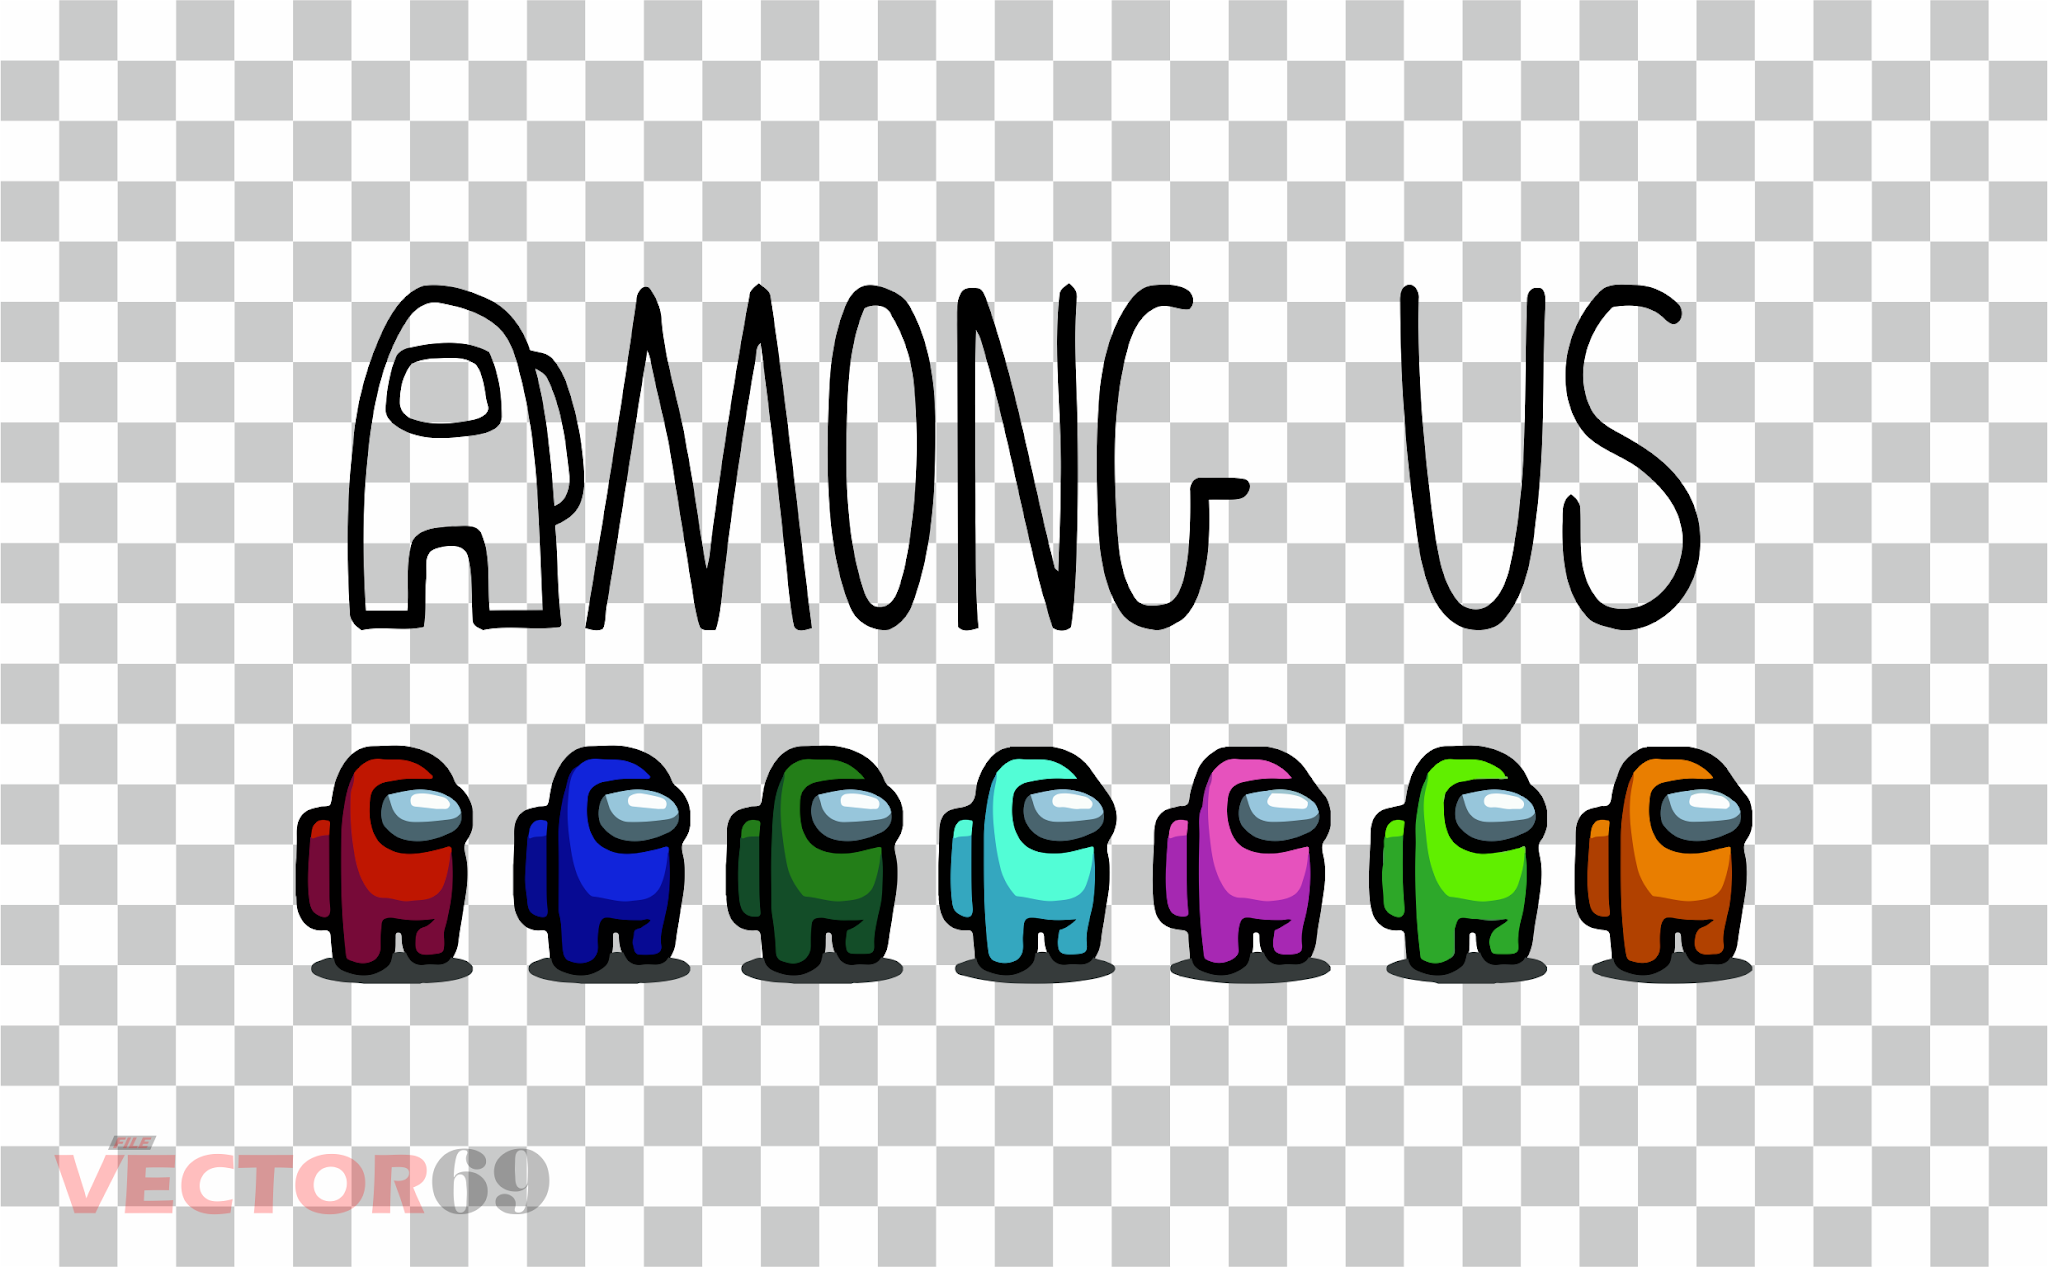 Among Us - Download Vector File PNG (Portable Network Graphics)